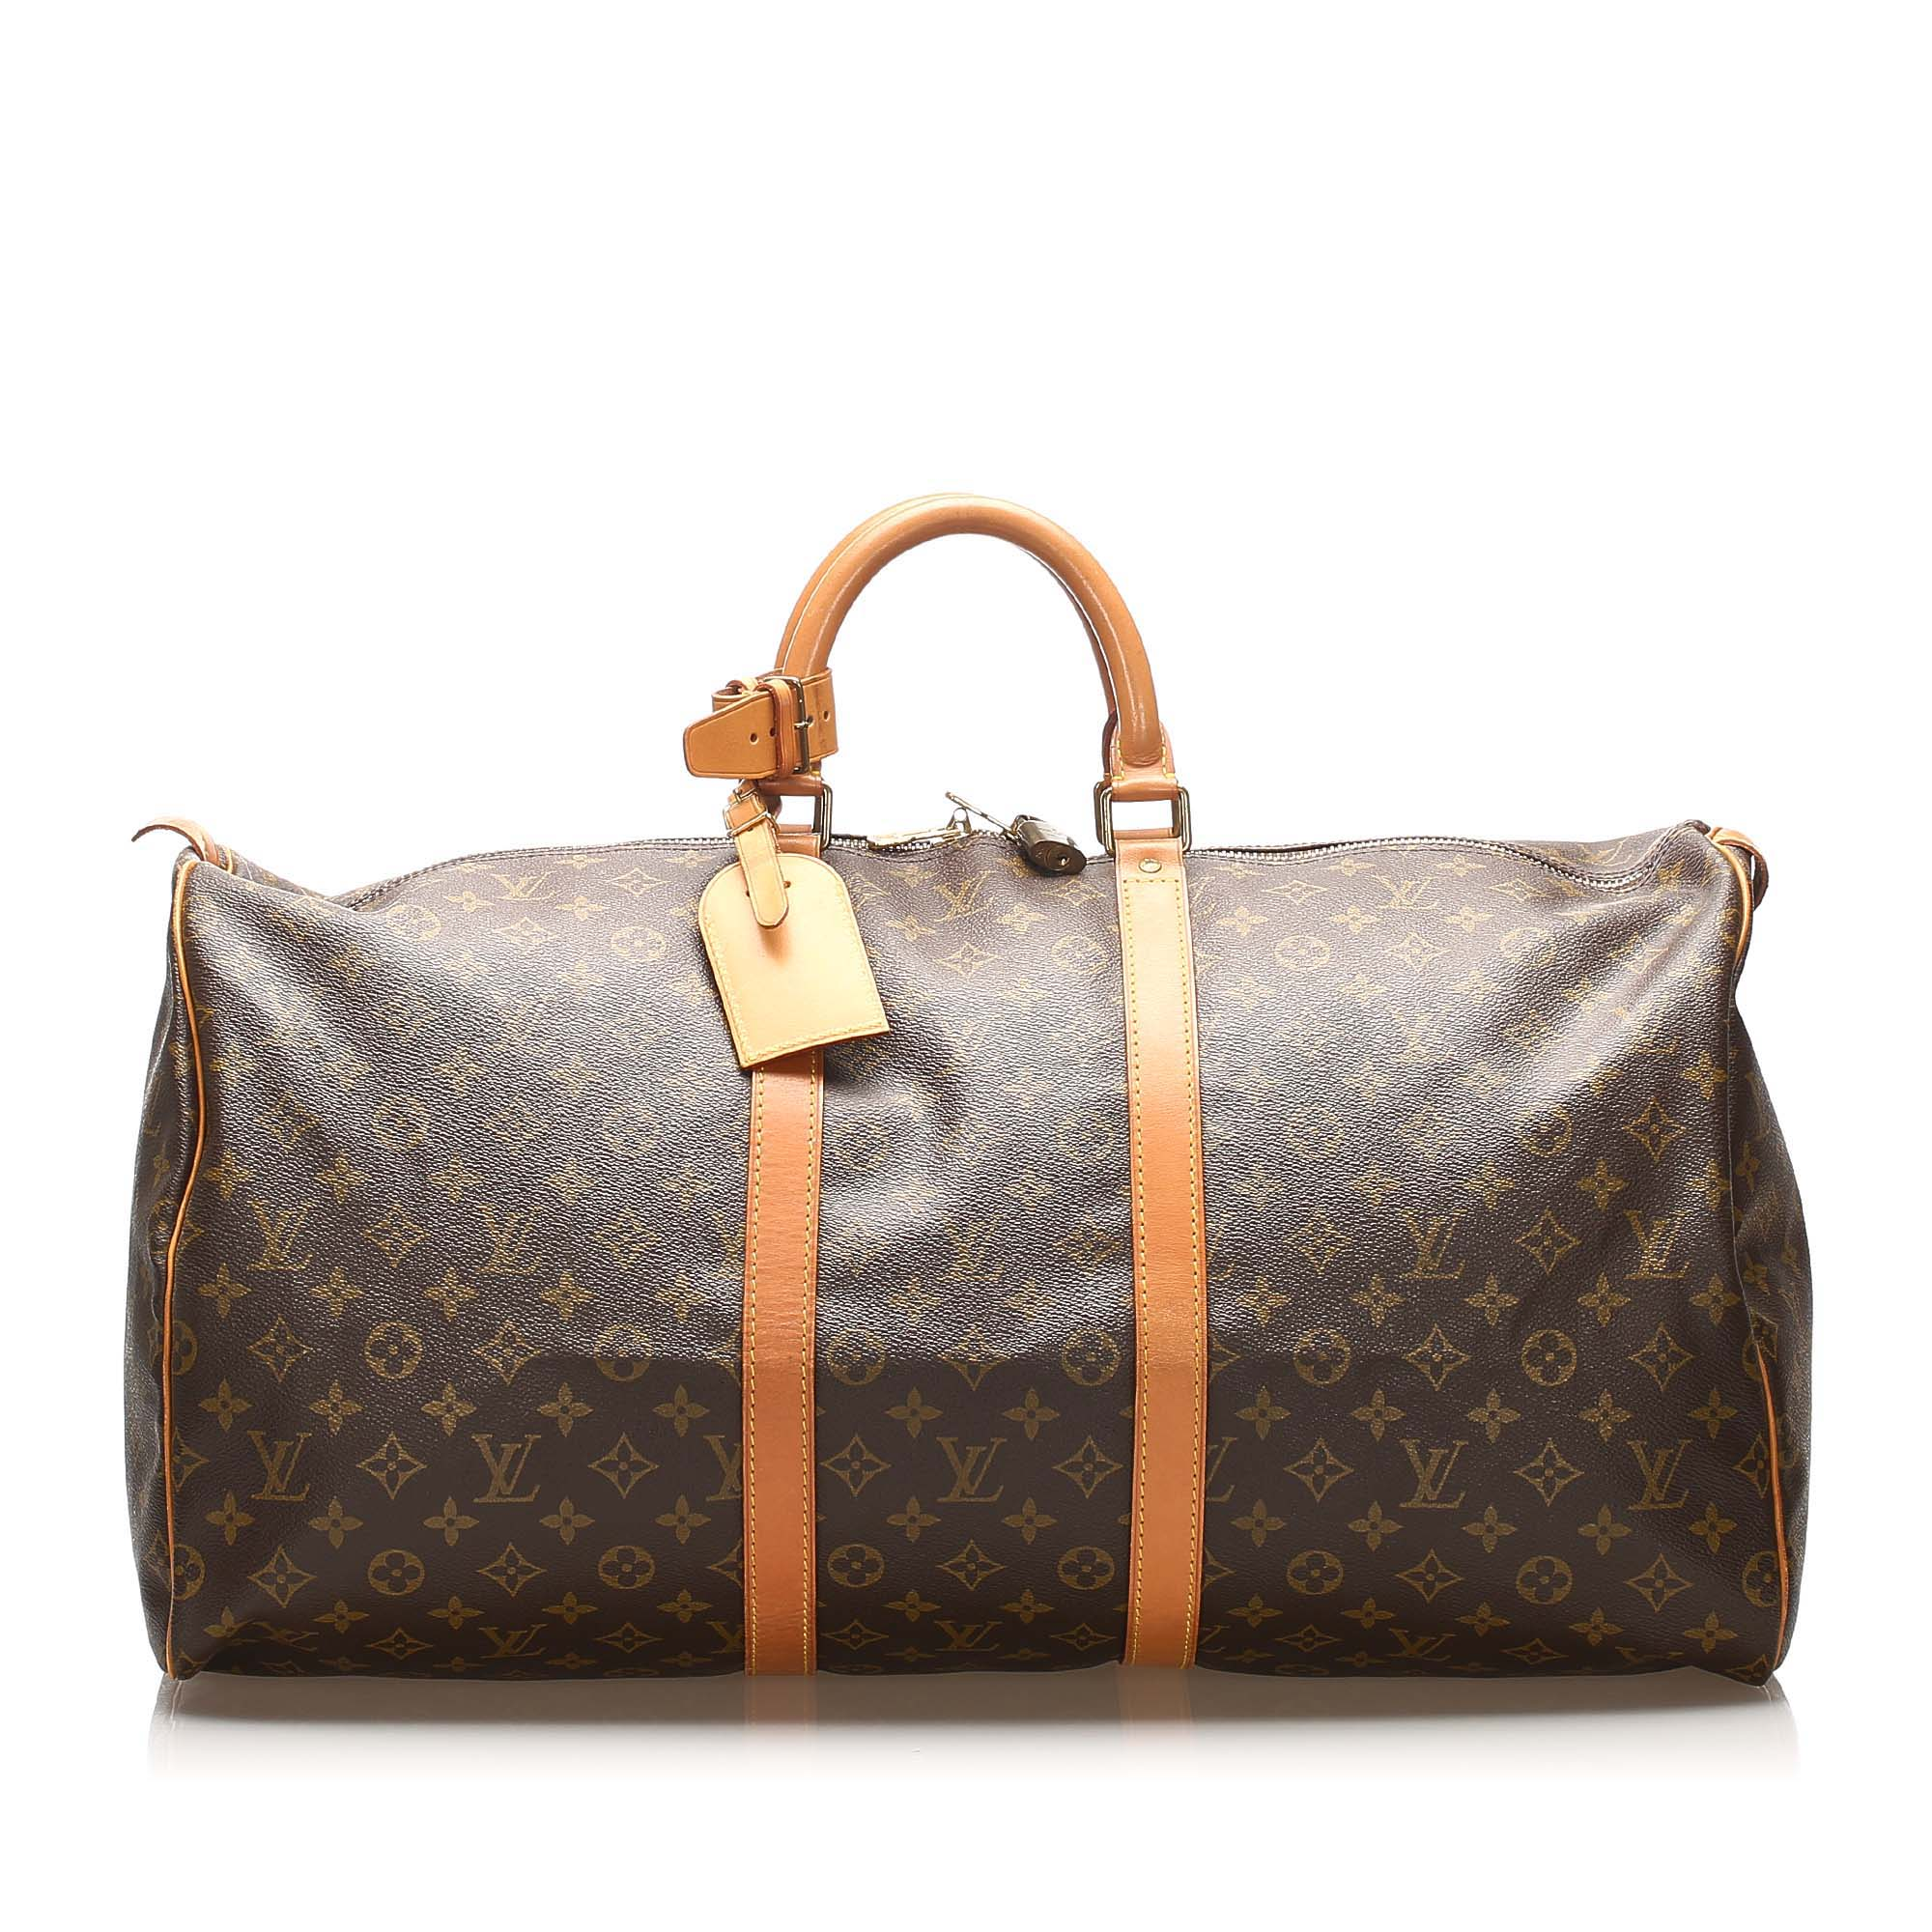 Sac XL en cuir LOUIS VUITTON Brown